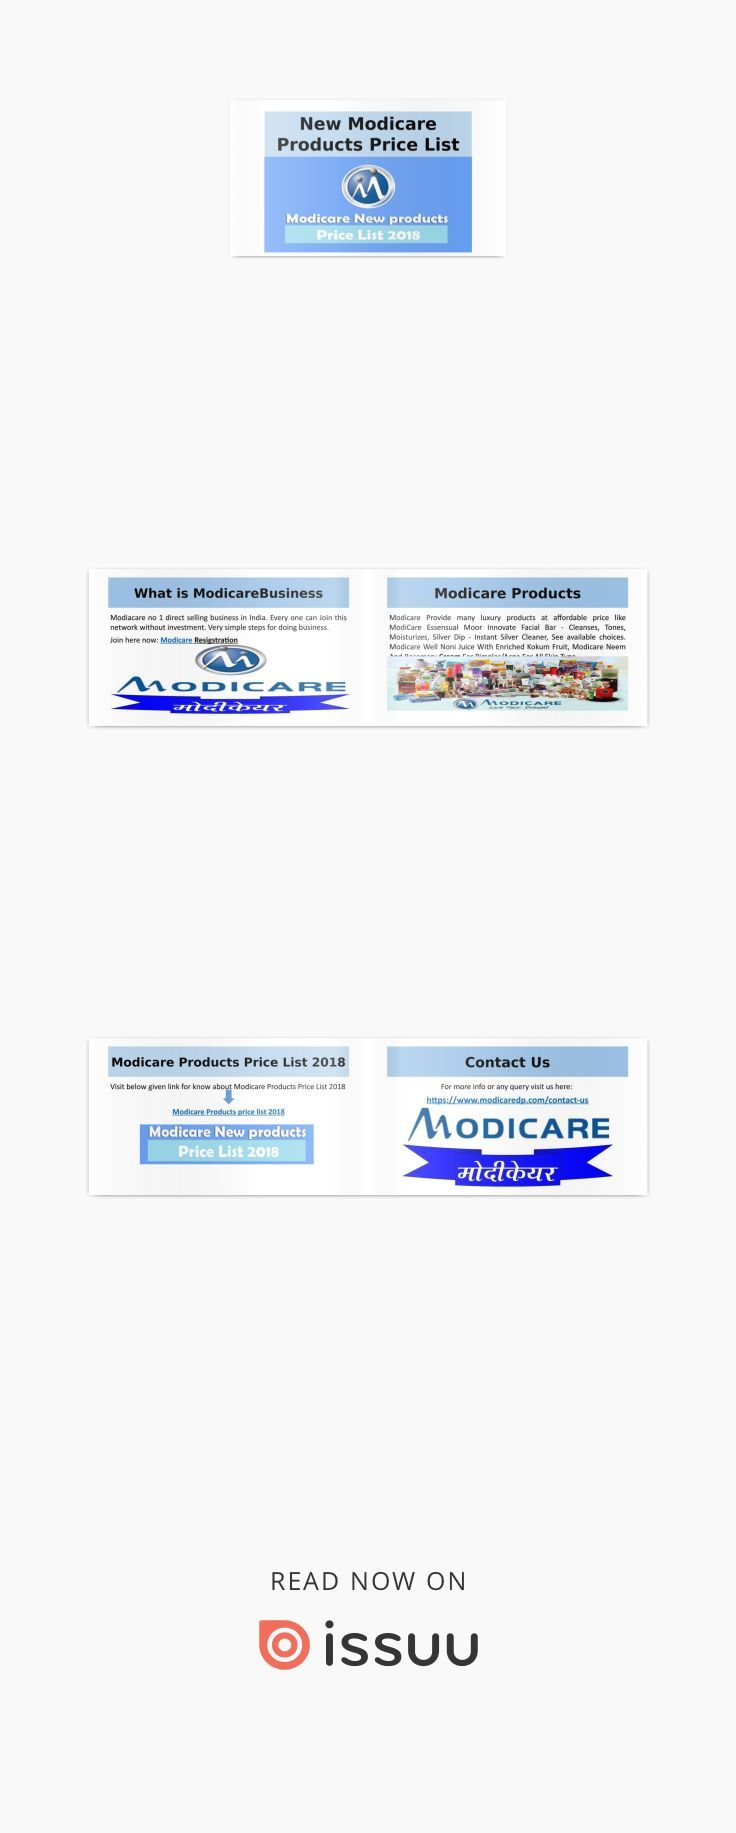 new modicare business products price list 2018 modicare products